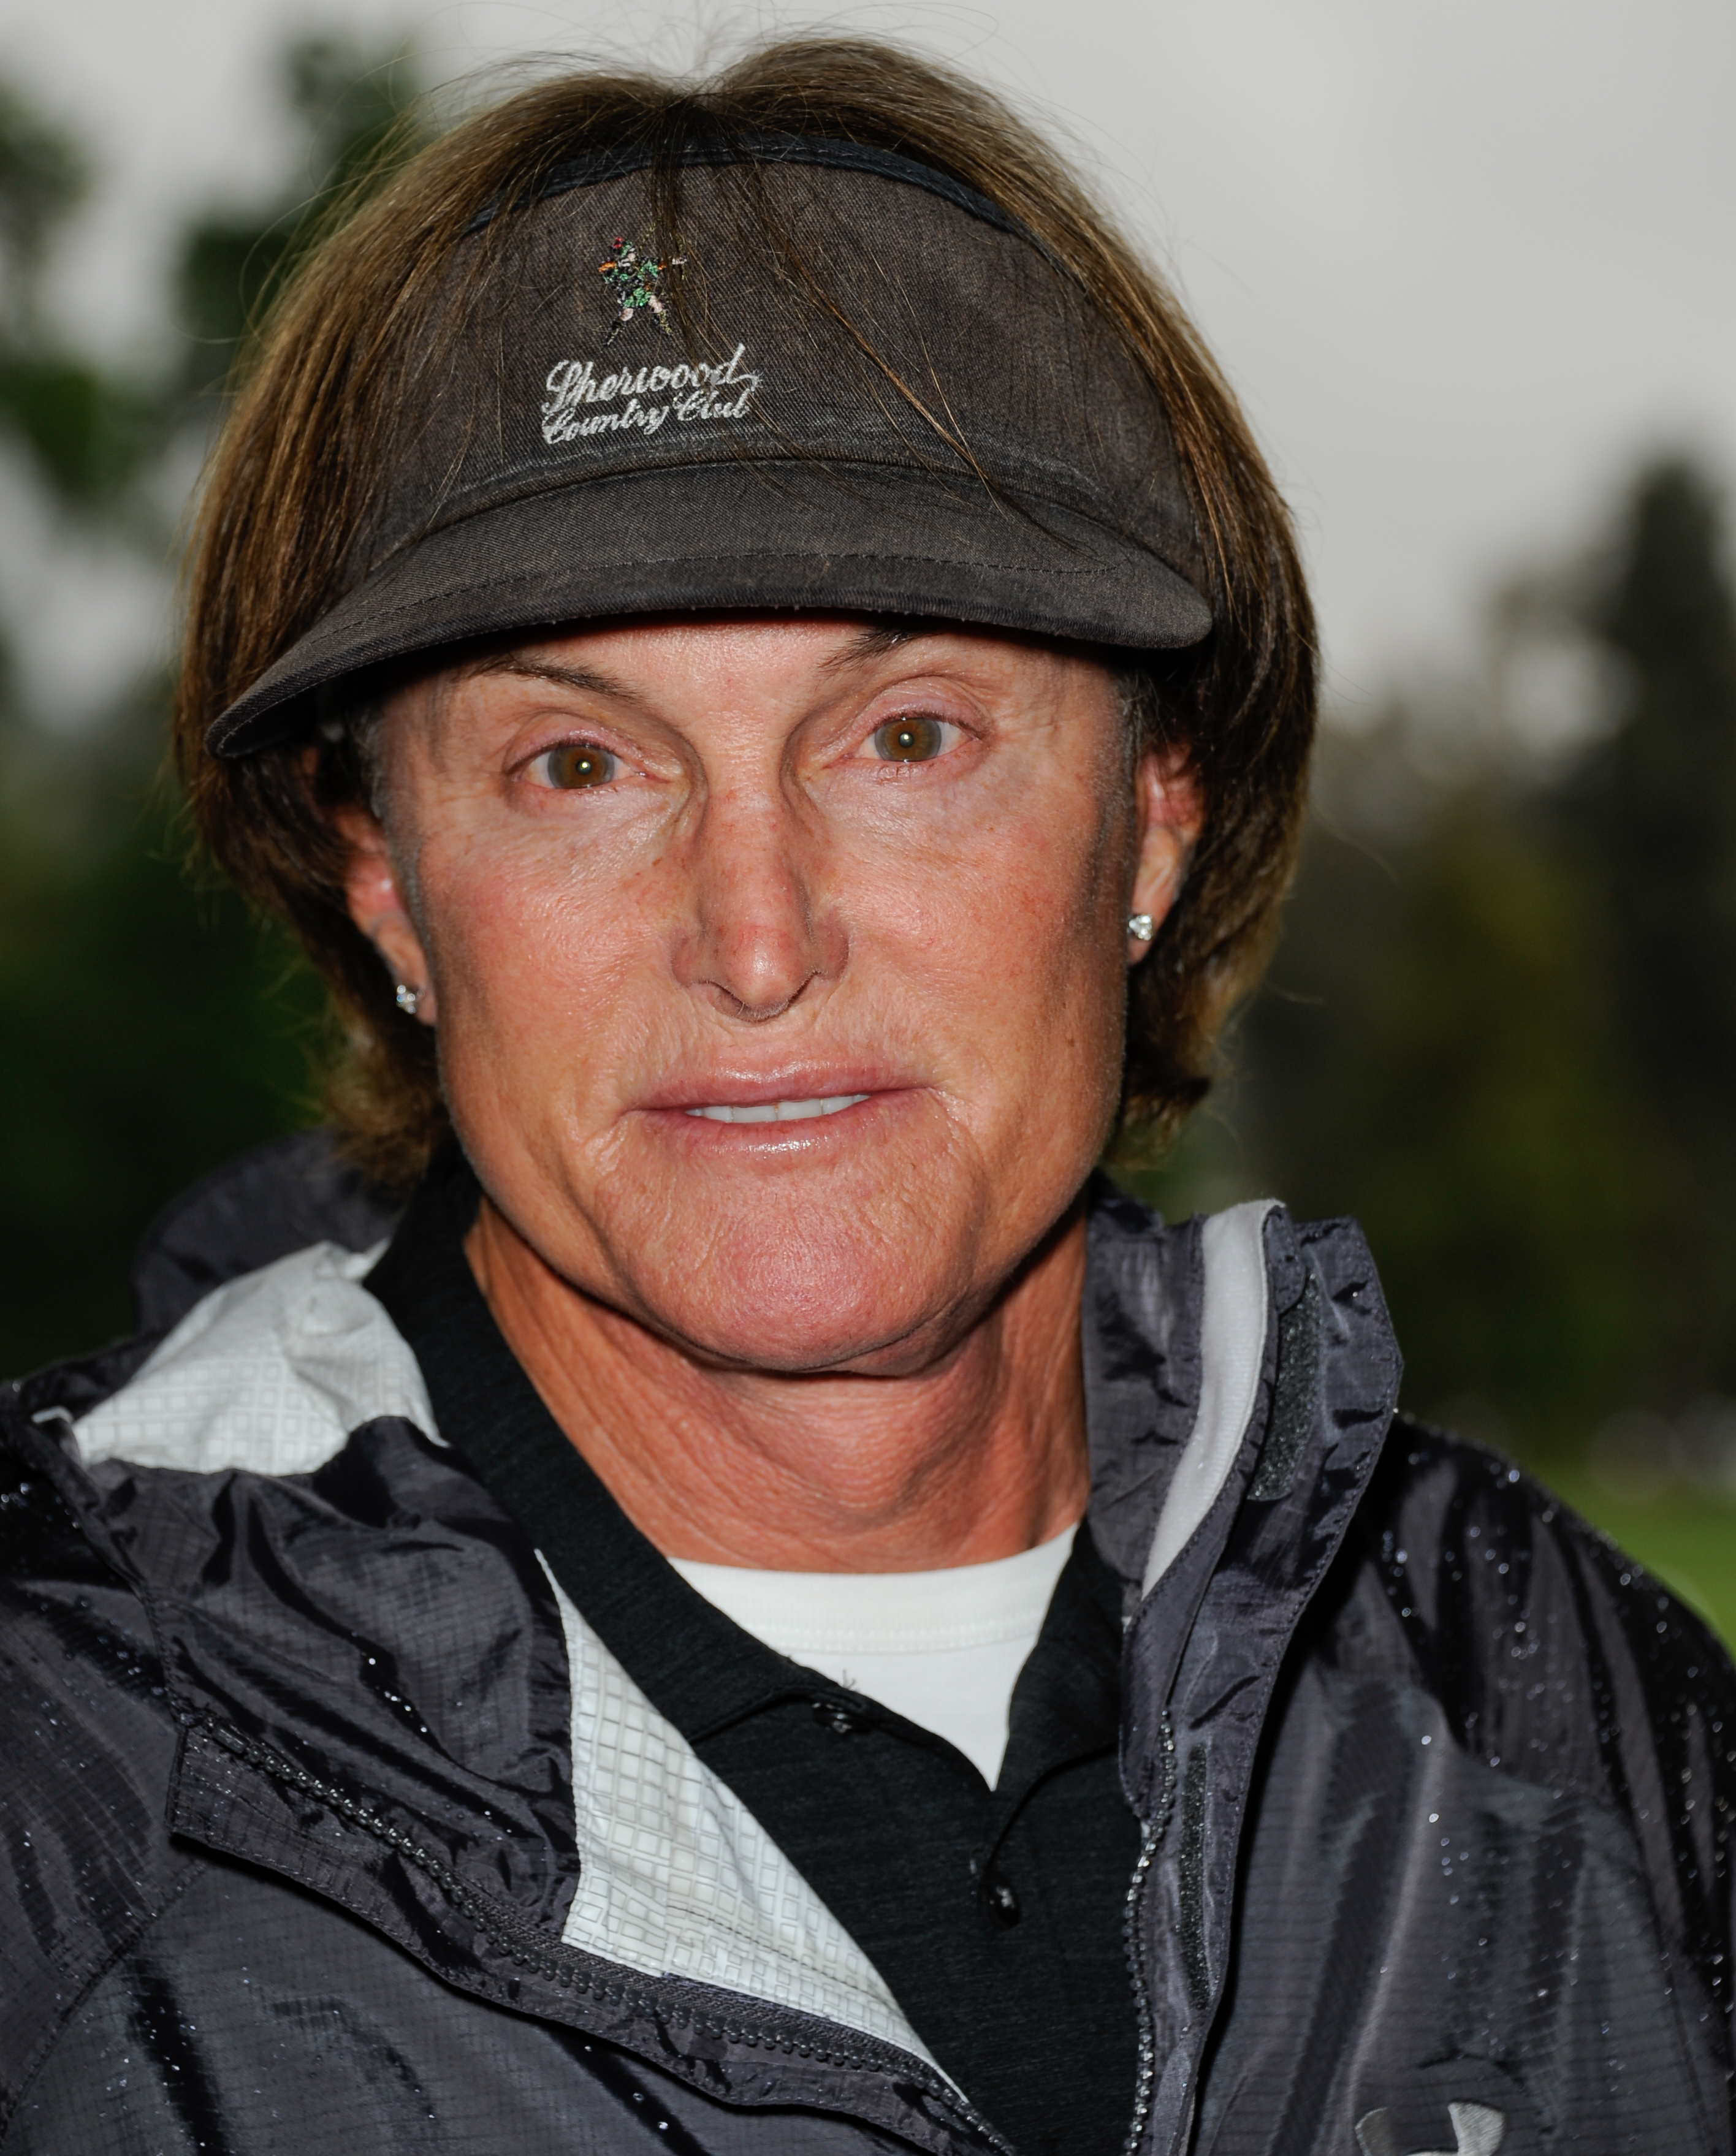 In this May 6, 2013 file photo, former Olympic athlete Bruce Jenner arrives at the 6th Annual George Lopez Celebrity Golf Classic at the Lakeside Golf Club in Toluca Lake, Calif.